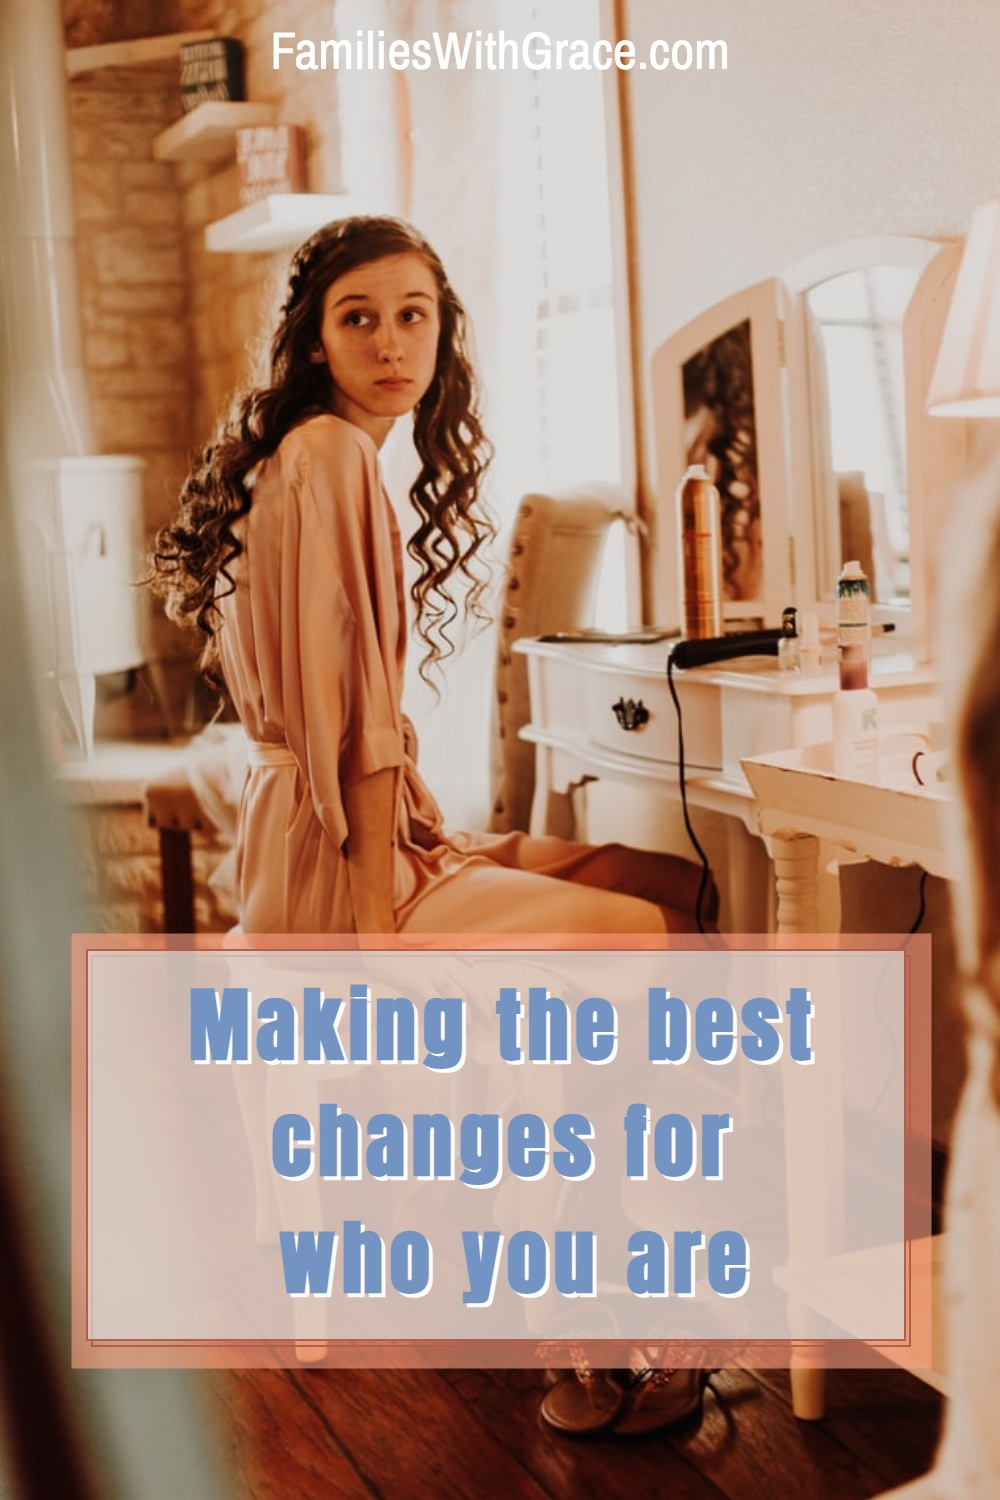 Making the best changes for who you are